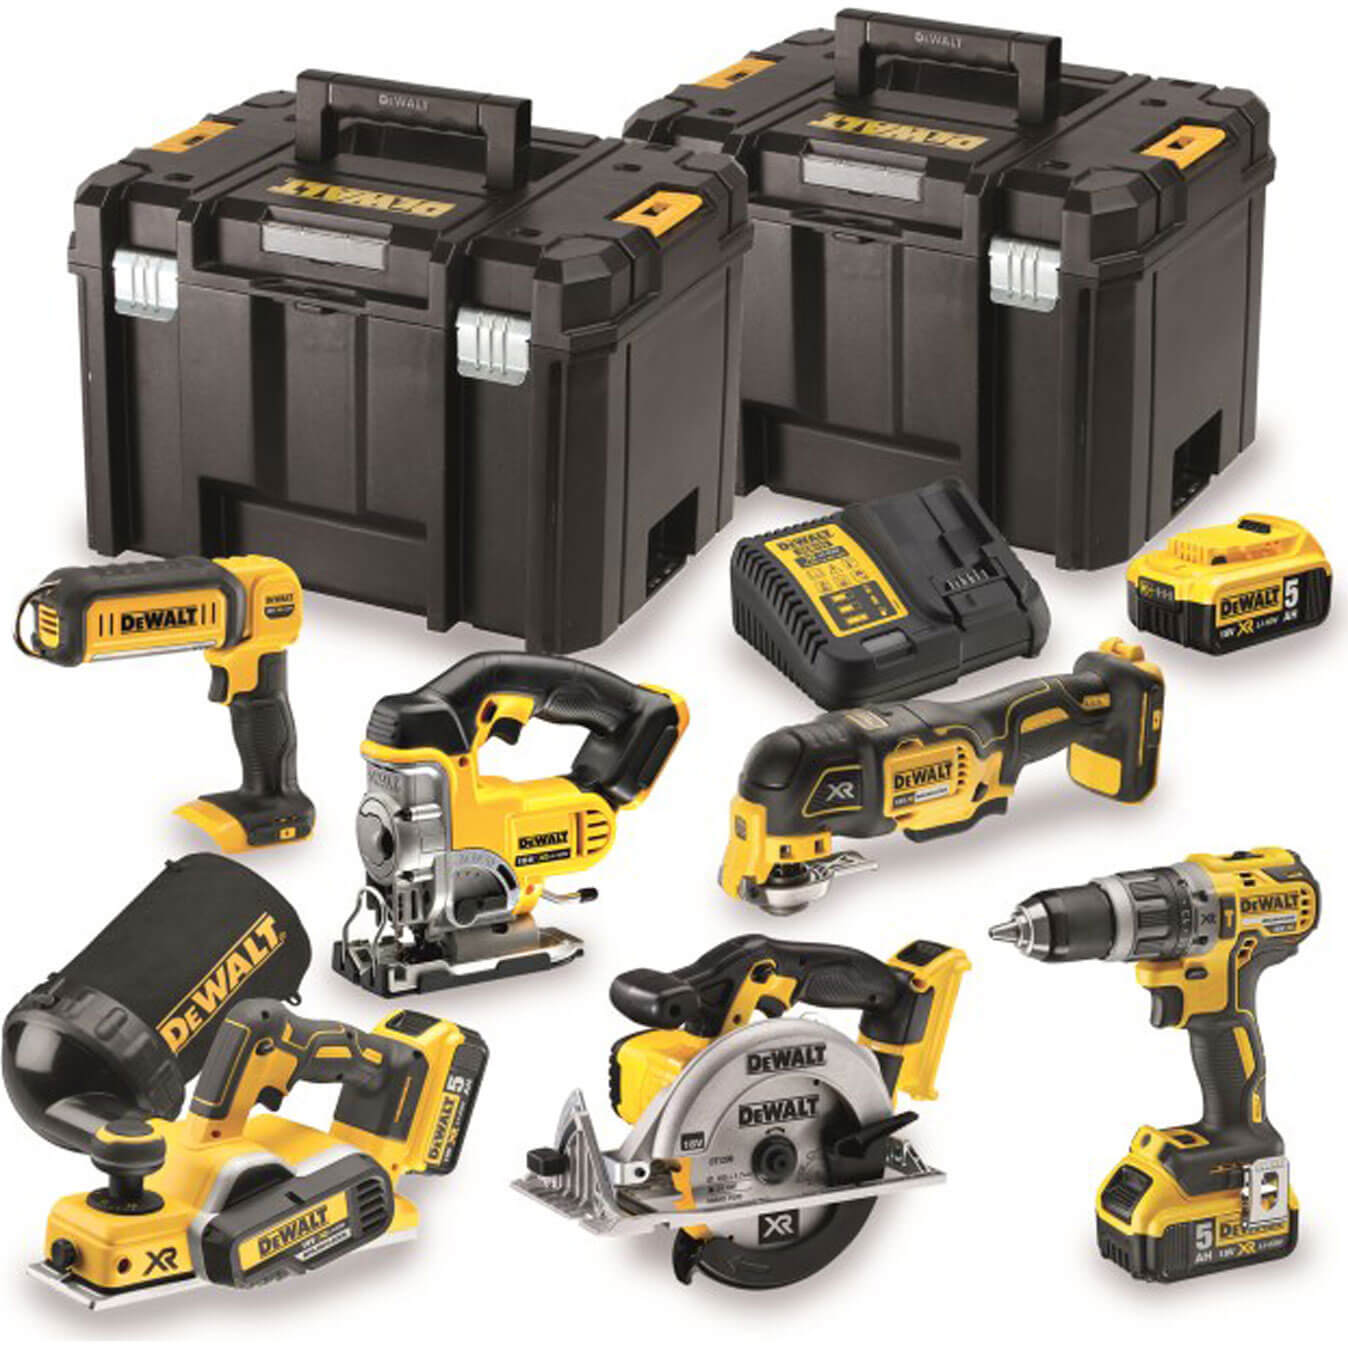 DeWalt DCK665 18v XR Cordless 6 Piece Power Tool Kit 3 x 5ah Liion Charger Case